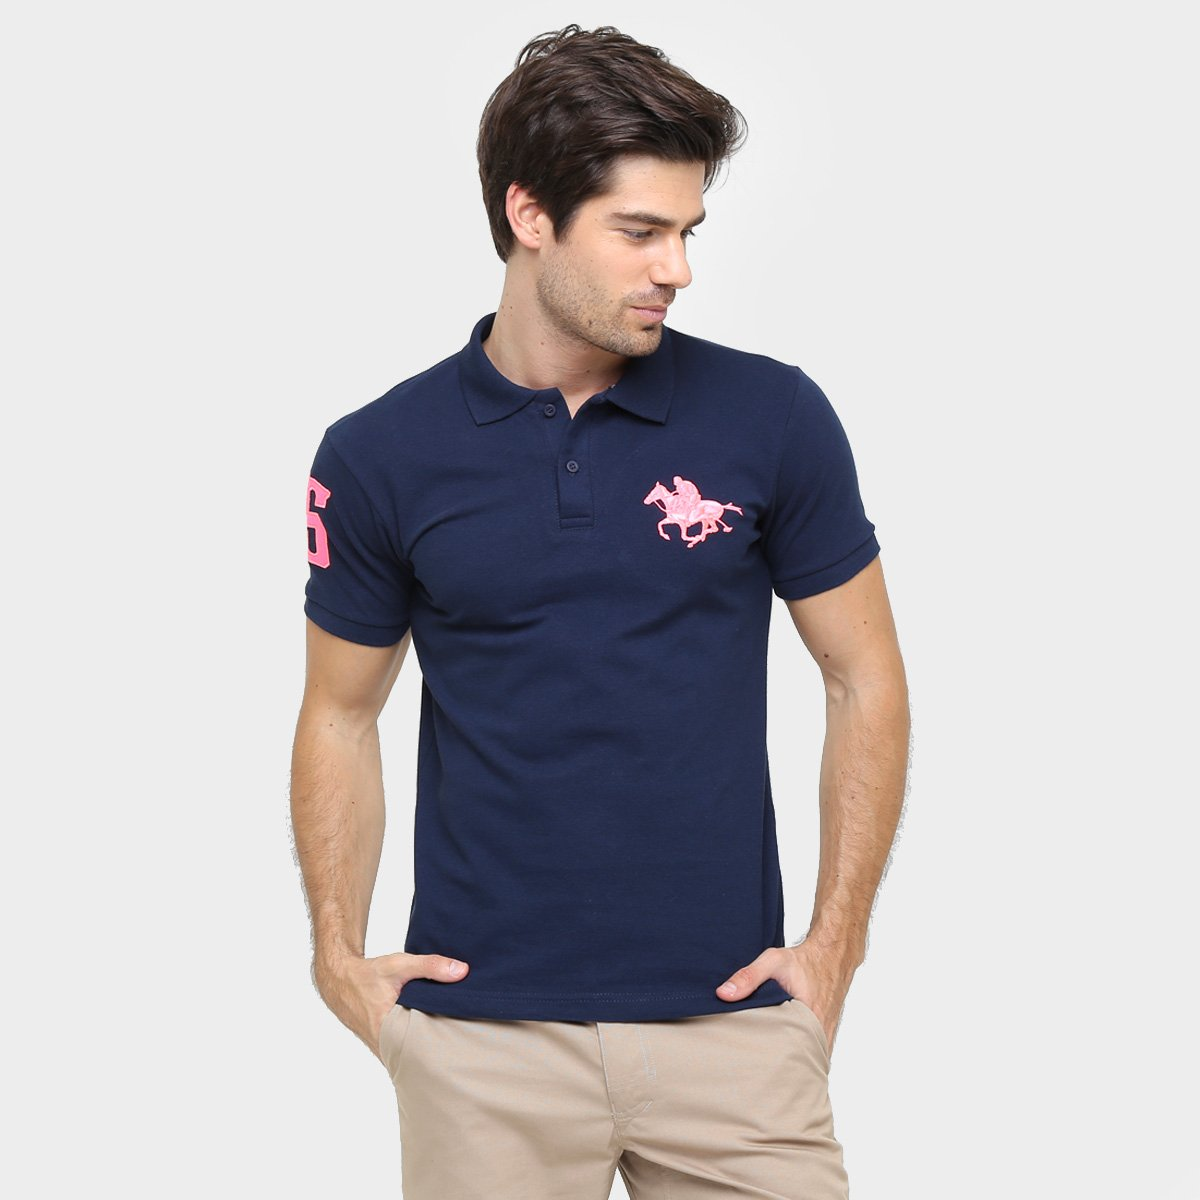 Camisa Polo Rg 518 Piquet Bordado Contraste Color 1027f2a0bed02